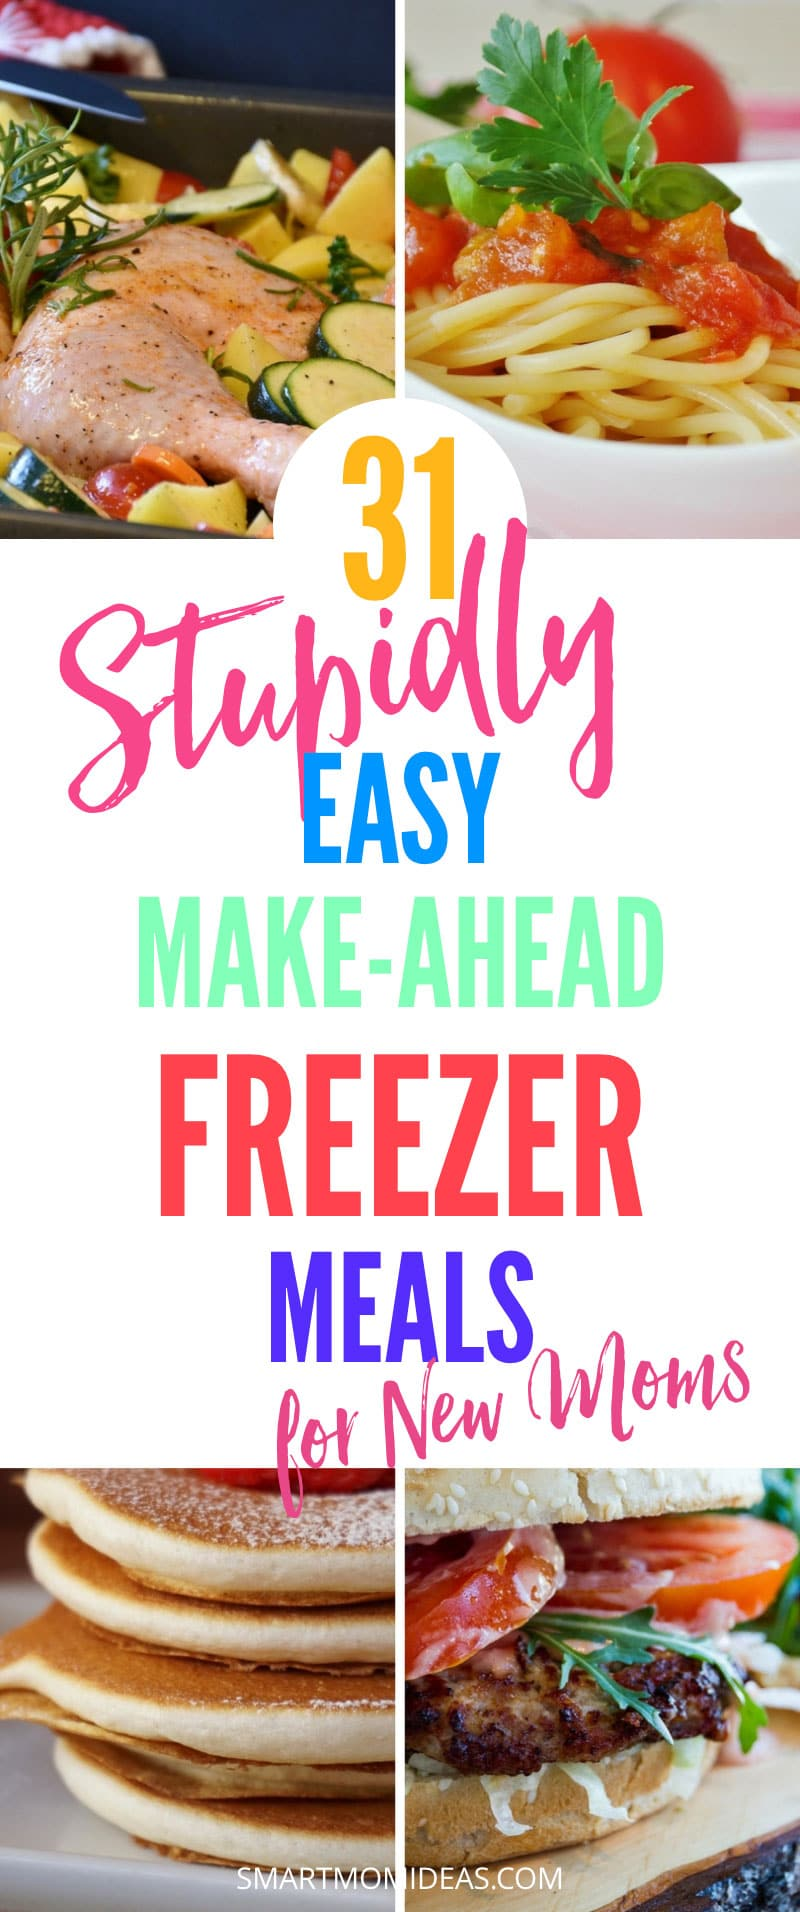 31 stupidly easy make ahead freezer meals for moms with toddlers